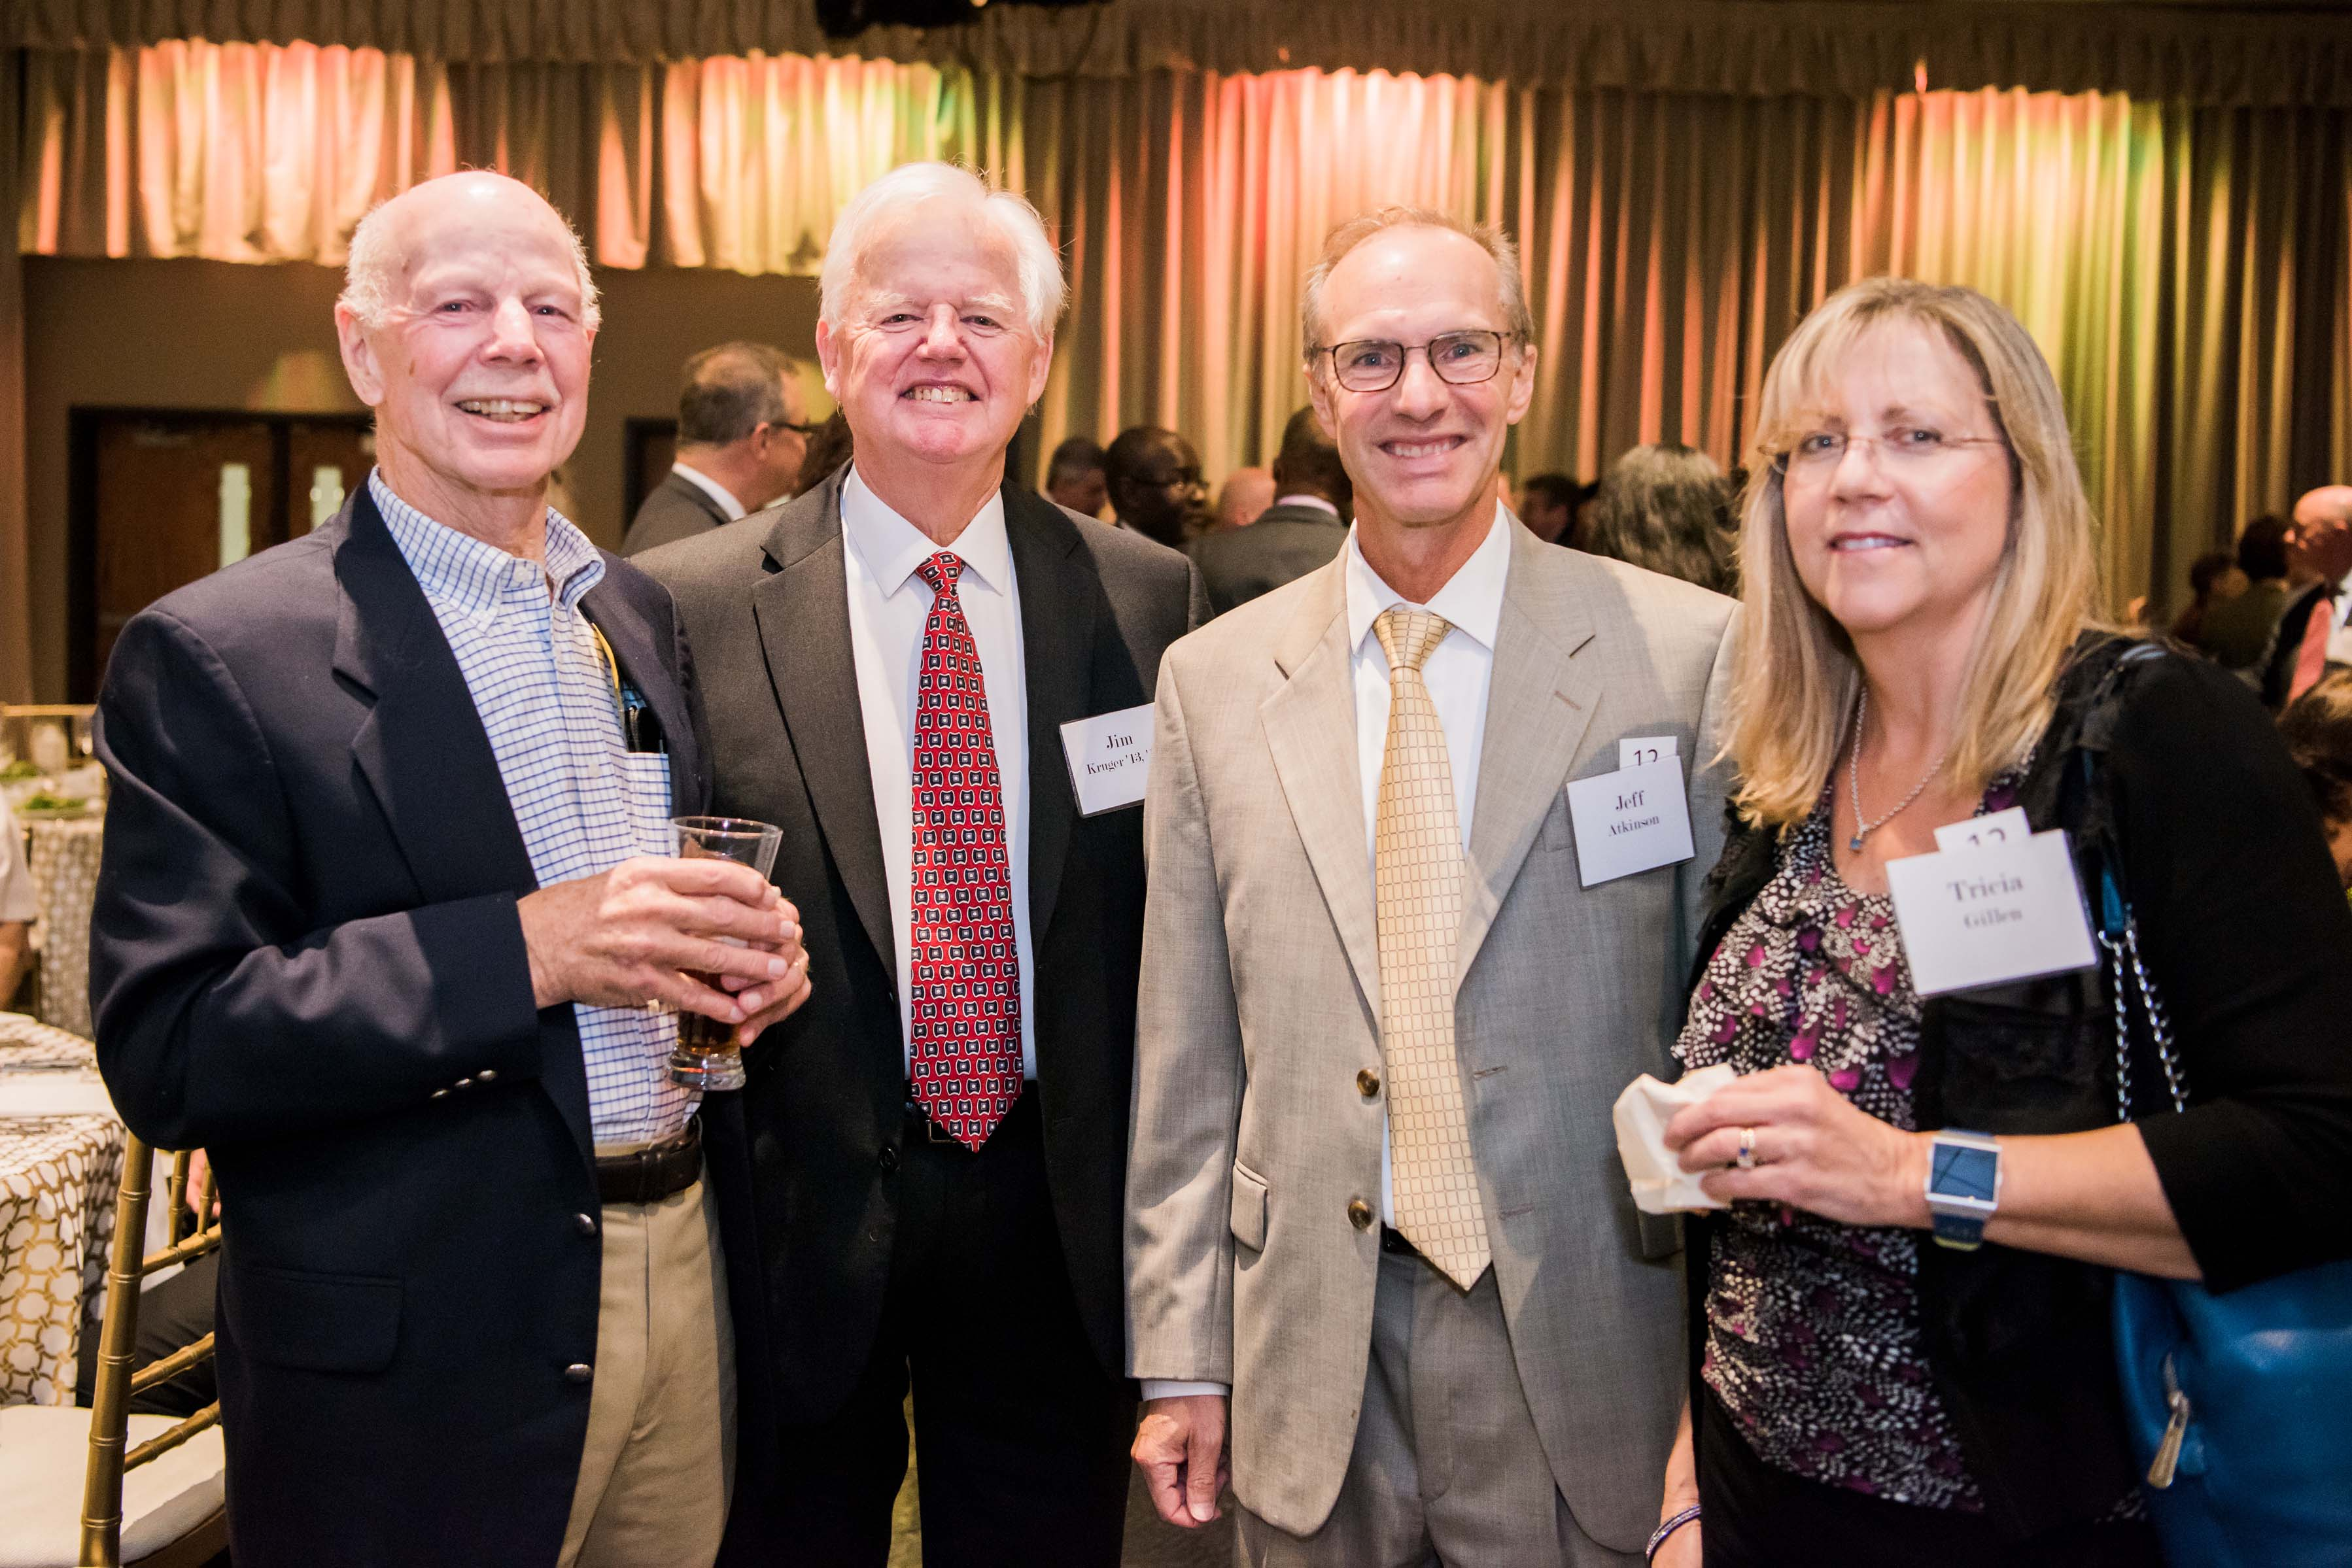 Ed, Jim, Jeff and Tricia pose together at Celebration dinner